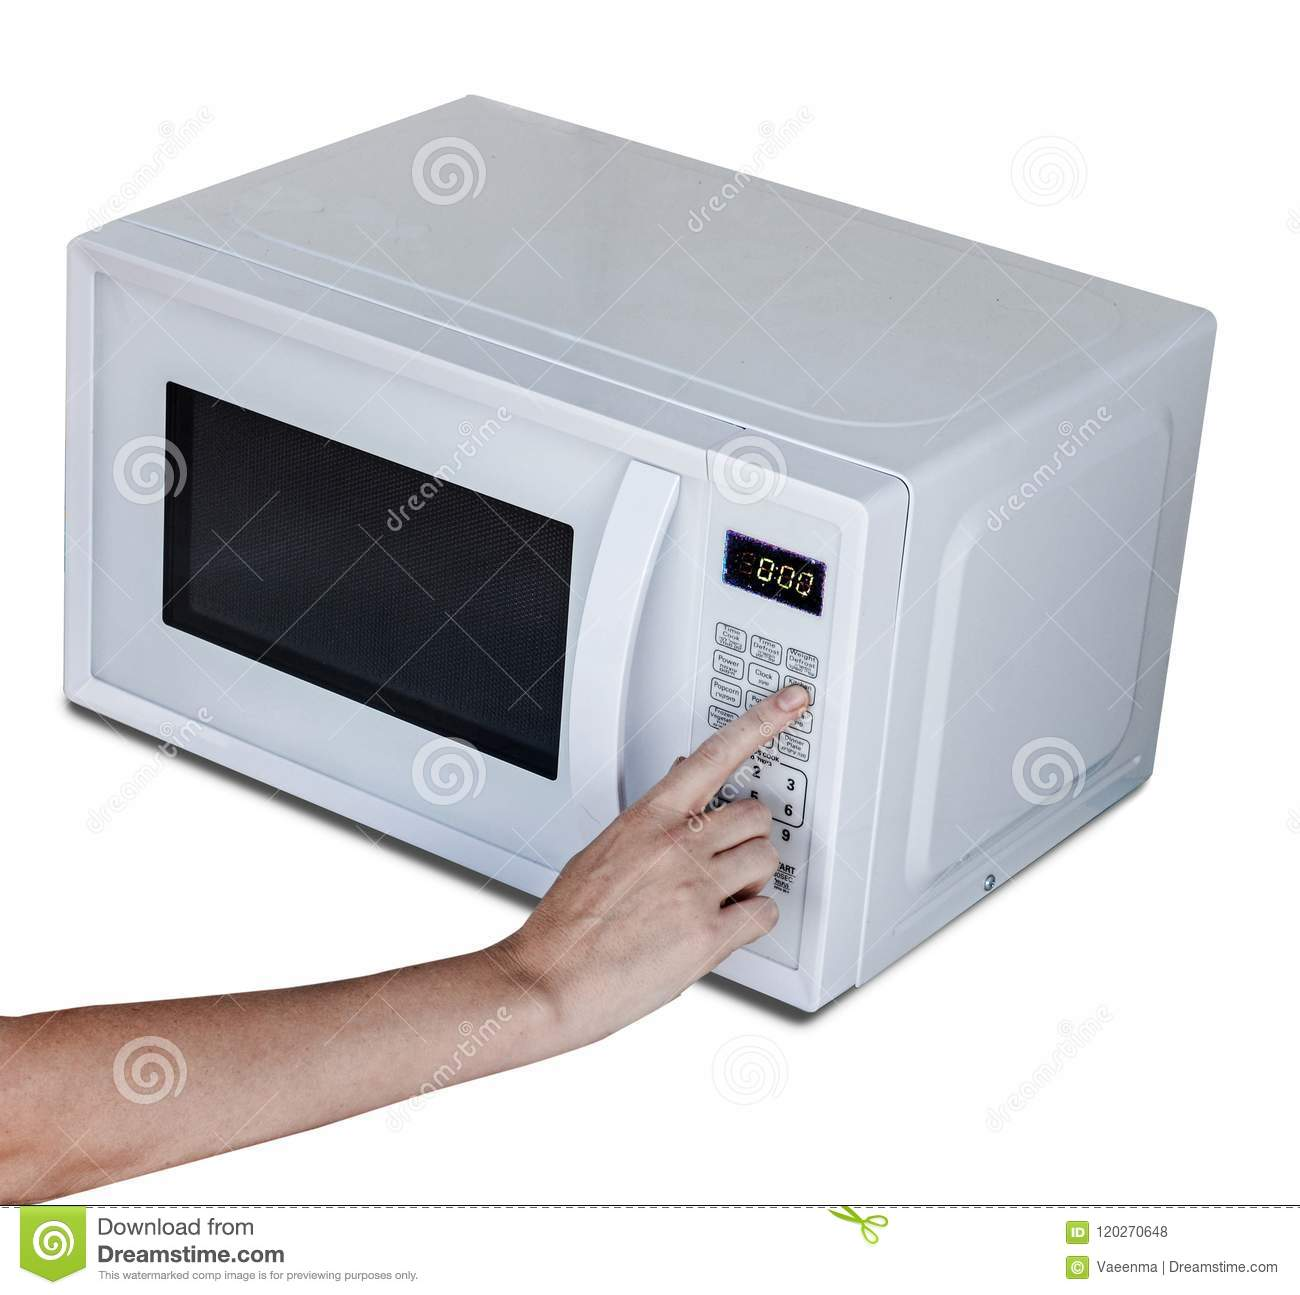 how to make handvo in microwave oven